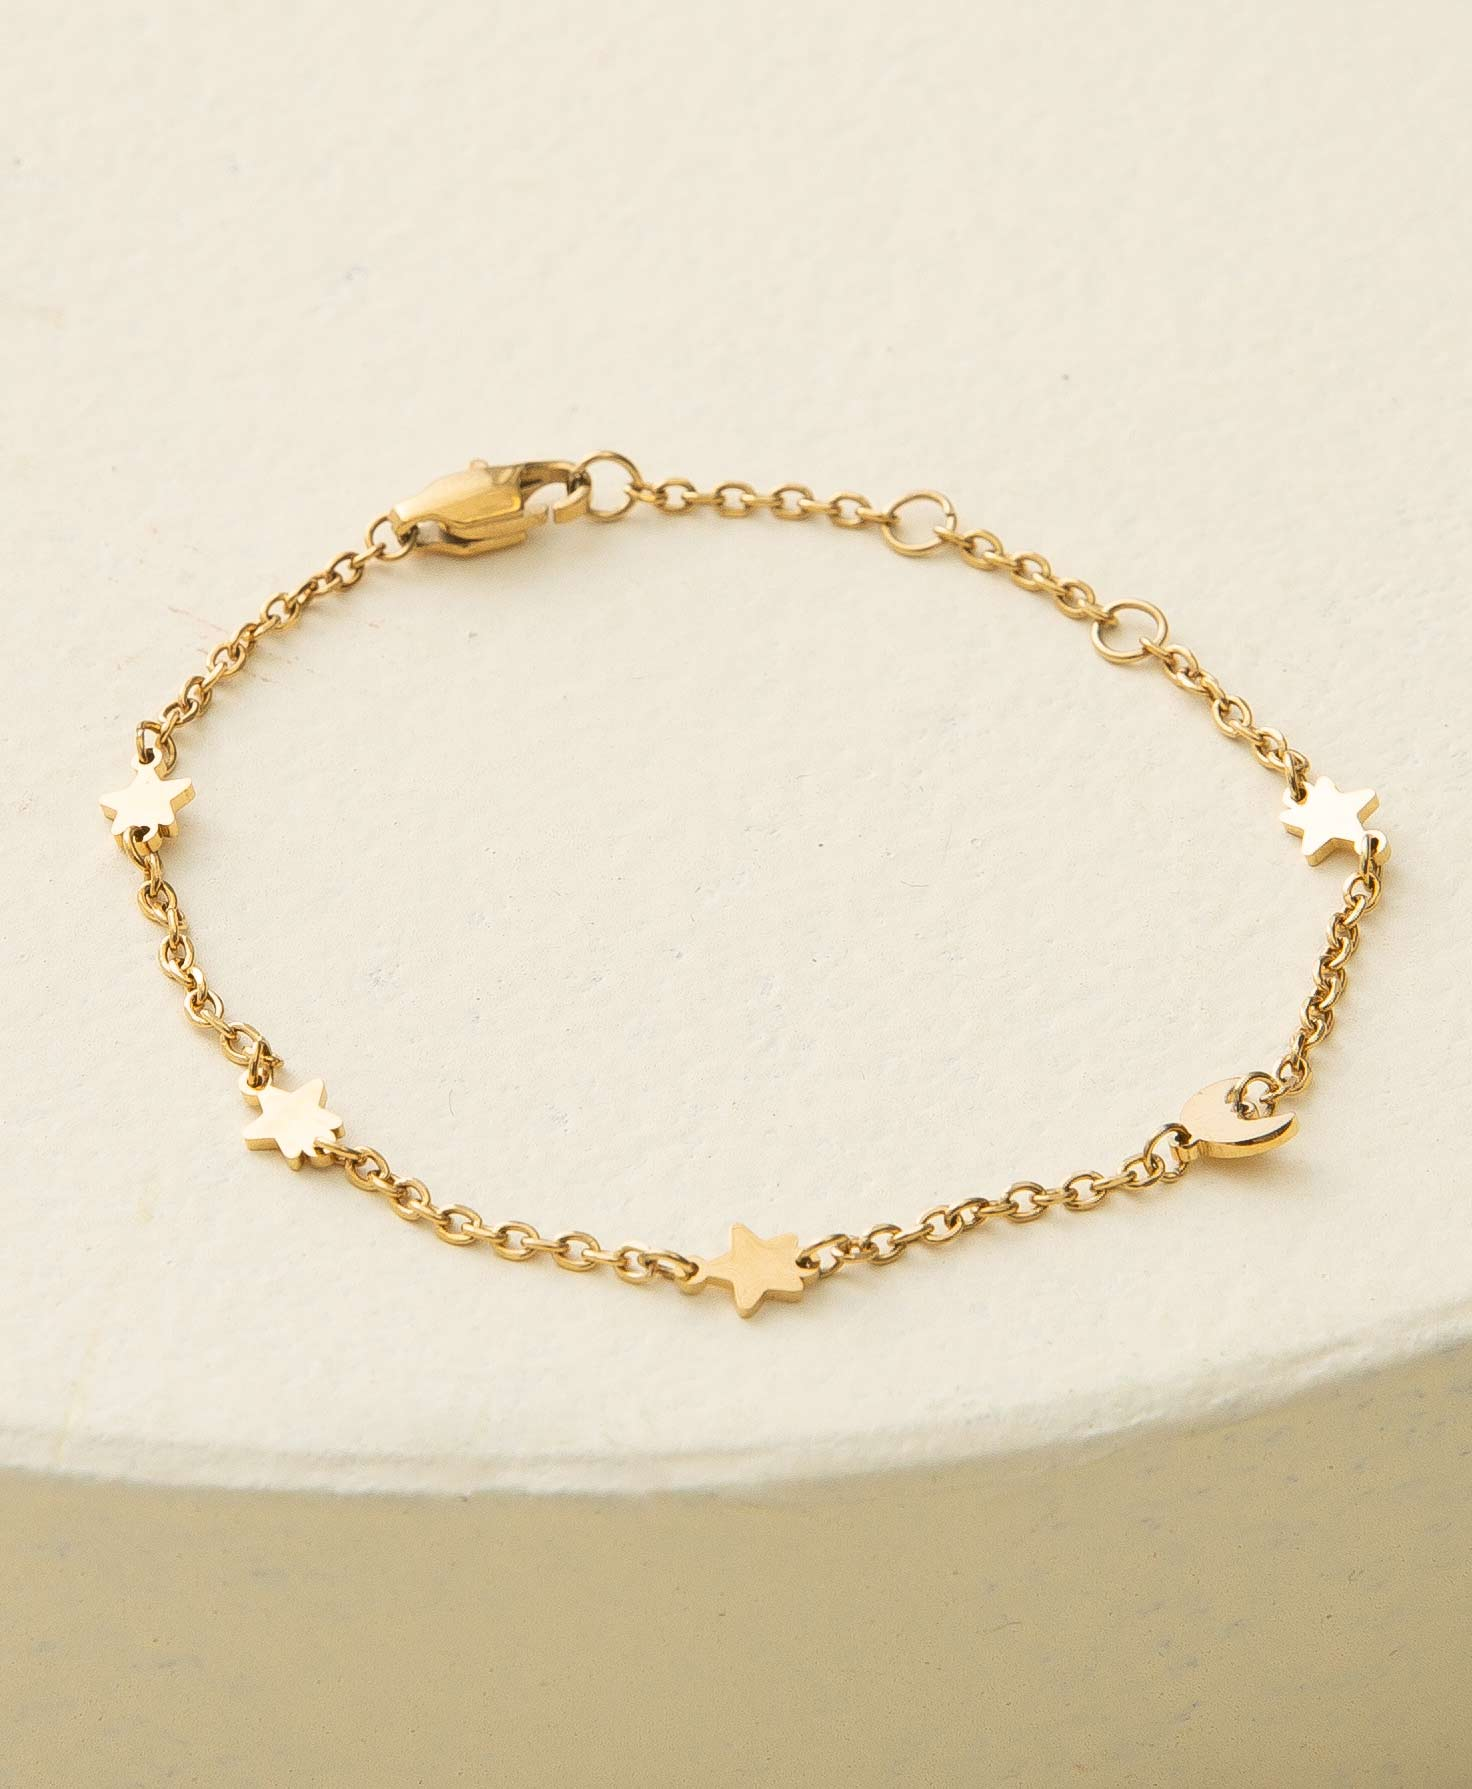 The Stargazer Bracelet rests on a white platform. It has a dainty, shiny gold chain. Small gold charms are attached to the chain roughly an inch apart. There are four star charms and one crescent moon charm. A lobster-claw closure secures the bracelet.